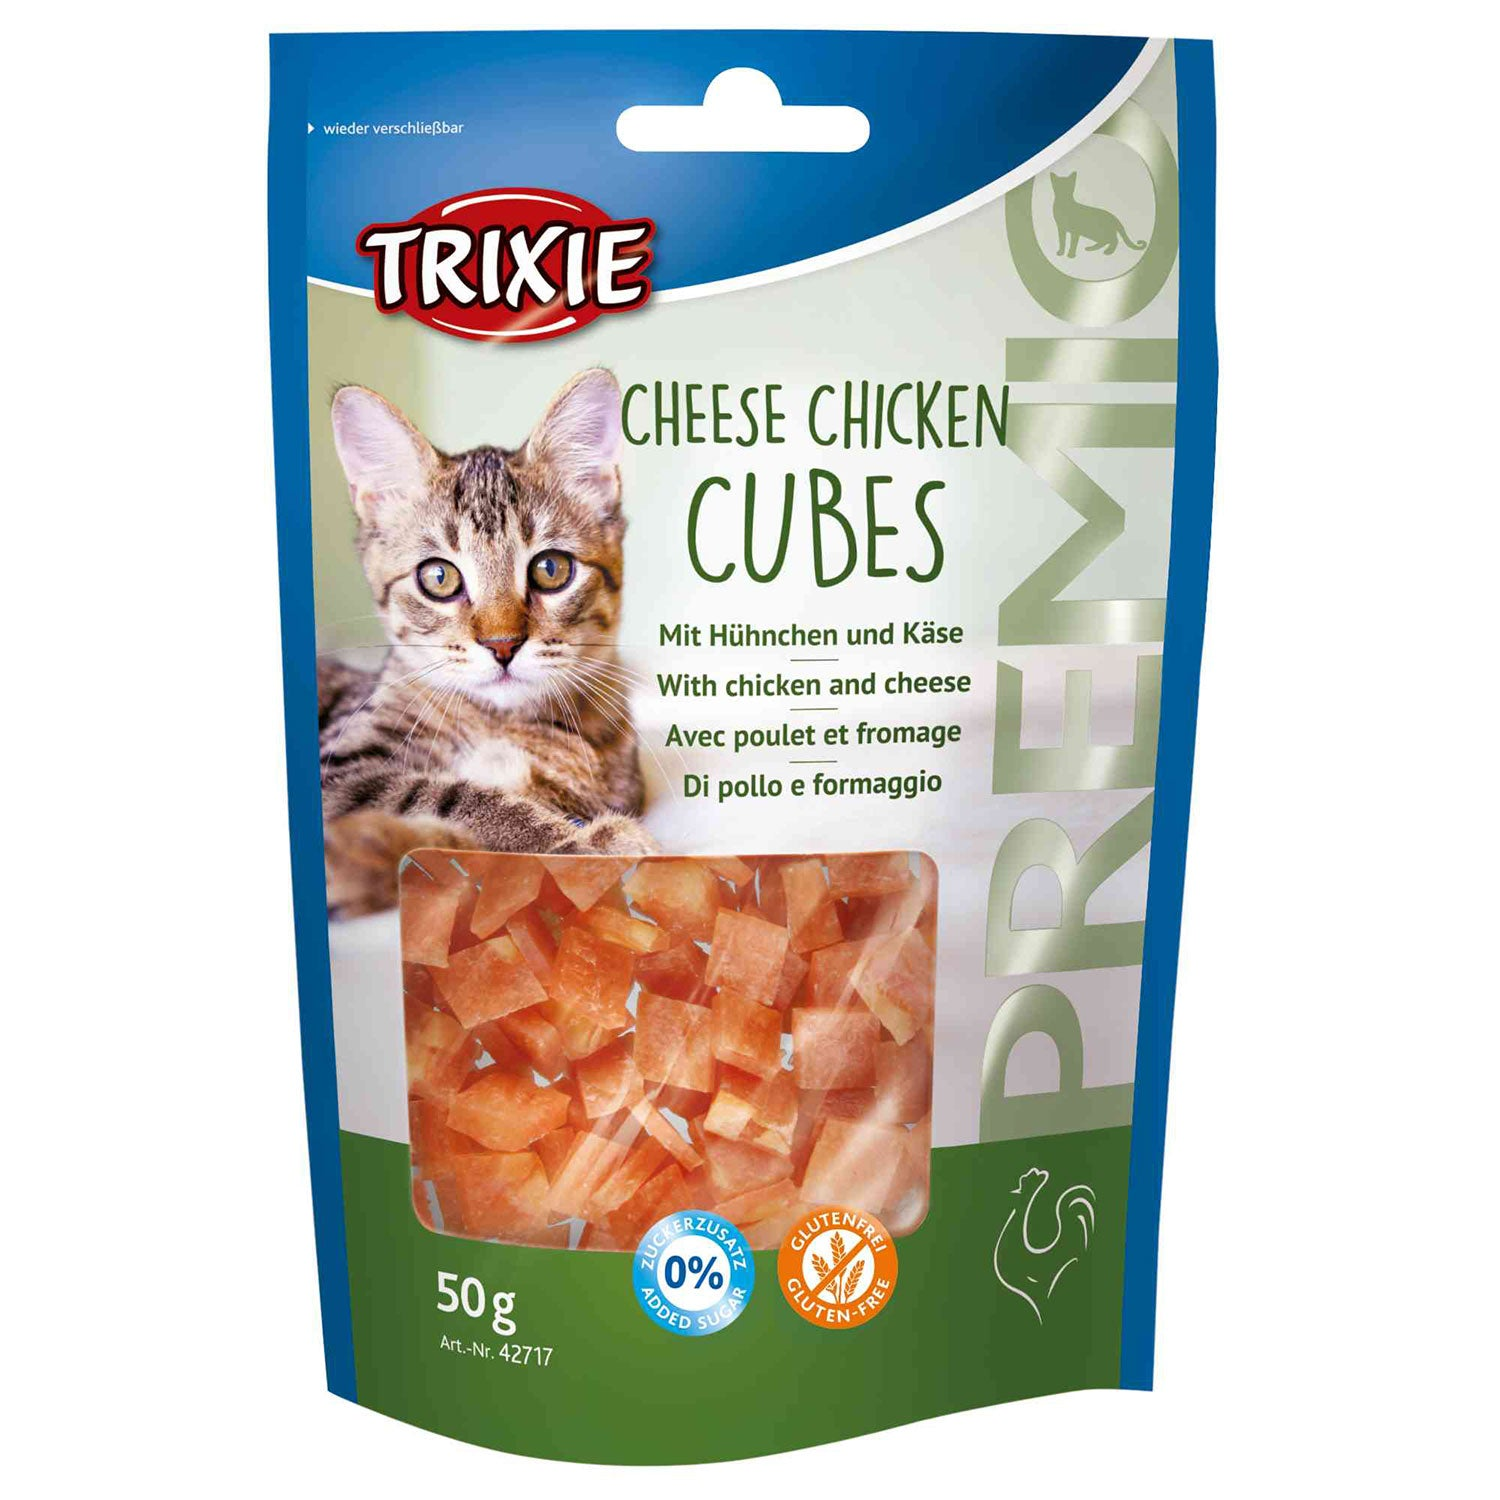 TRIXIE - Premio Cheese Chicken Cubes